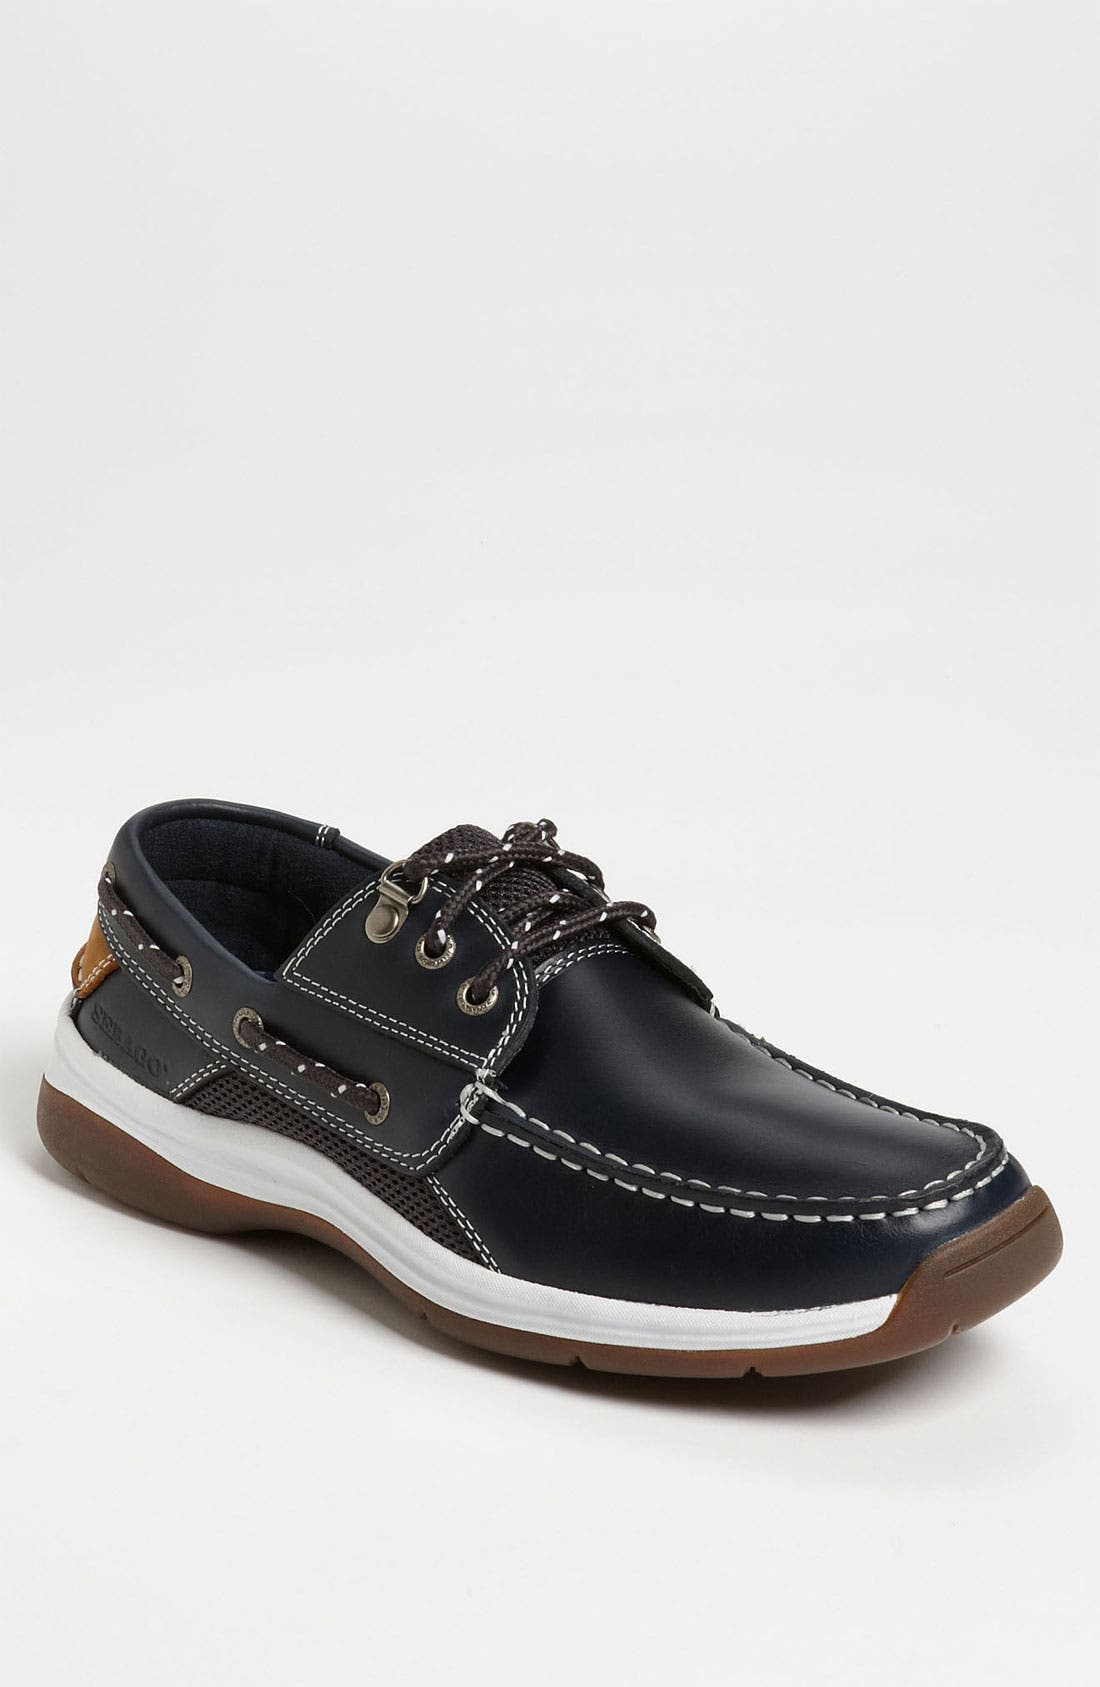 Alternate Image 1 Selected - Sebago 'Helmsman' Boat Shoe